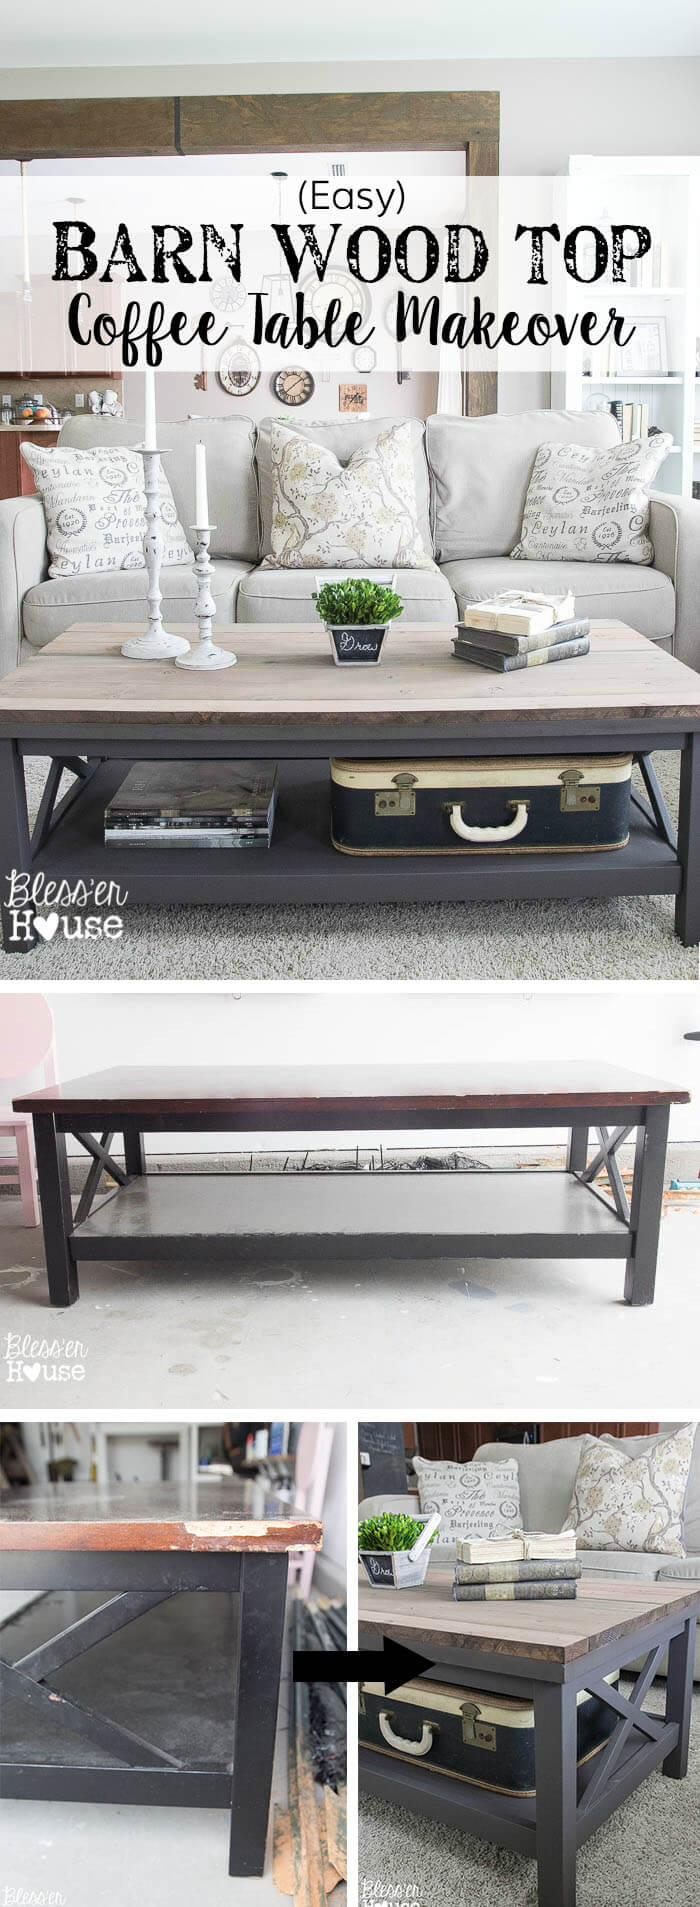 Transform Any Table with Barn Wood